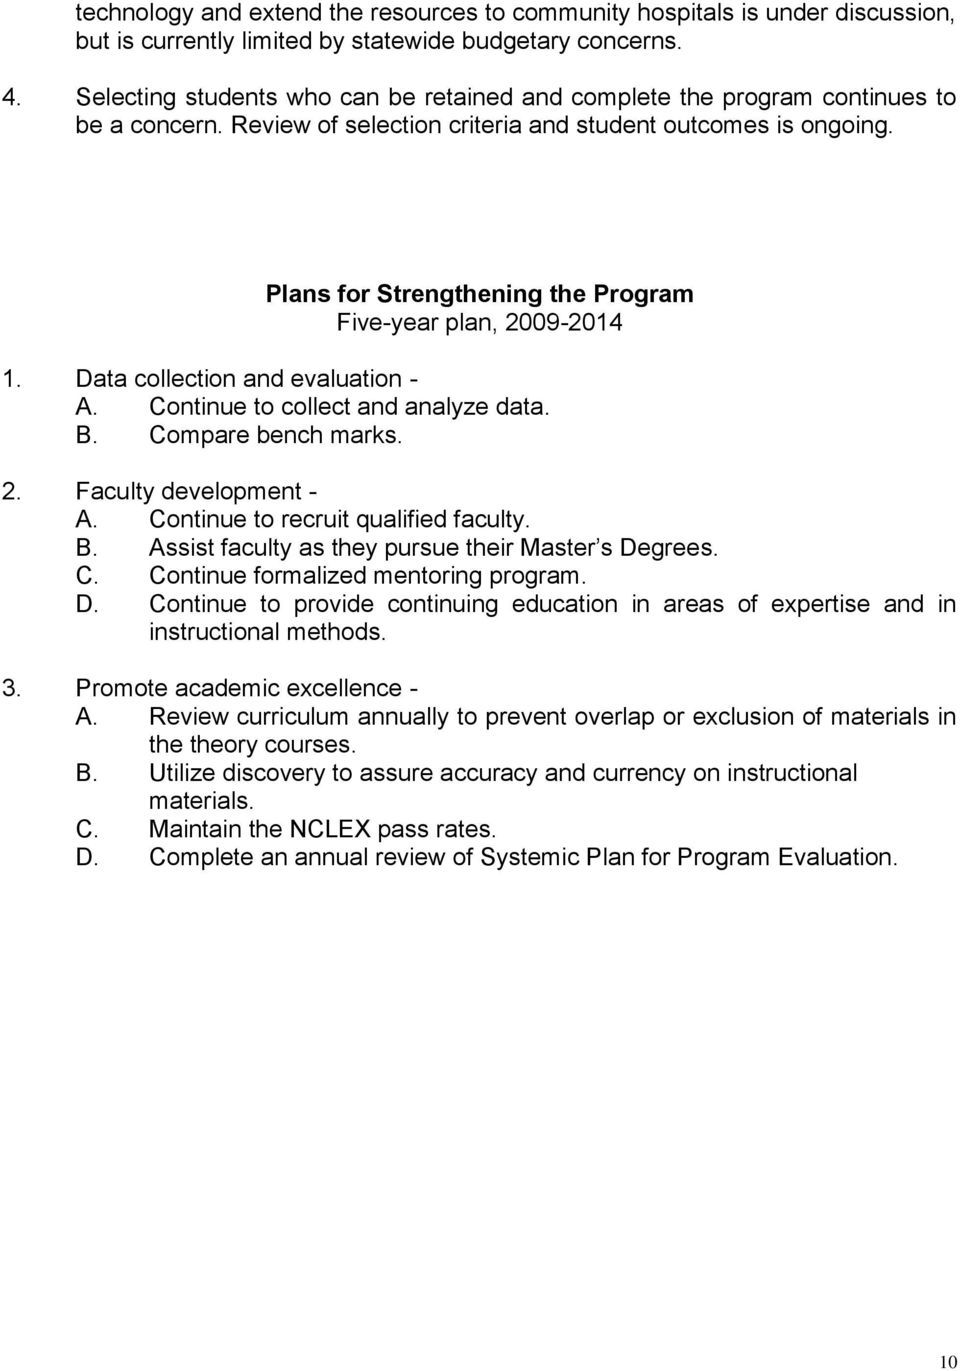 Plans for Strengthening the Program Five-year plan, 2009-2014 1. Data collection and evaluation - A. Continue to collect and analyze data. B. Compare bench marks. 2. Faculty development - A.